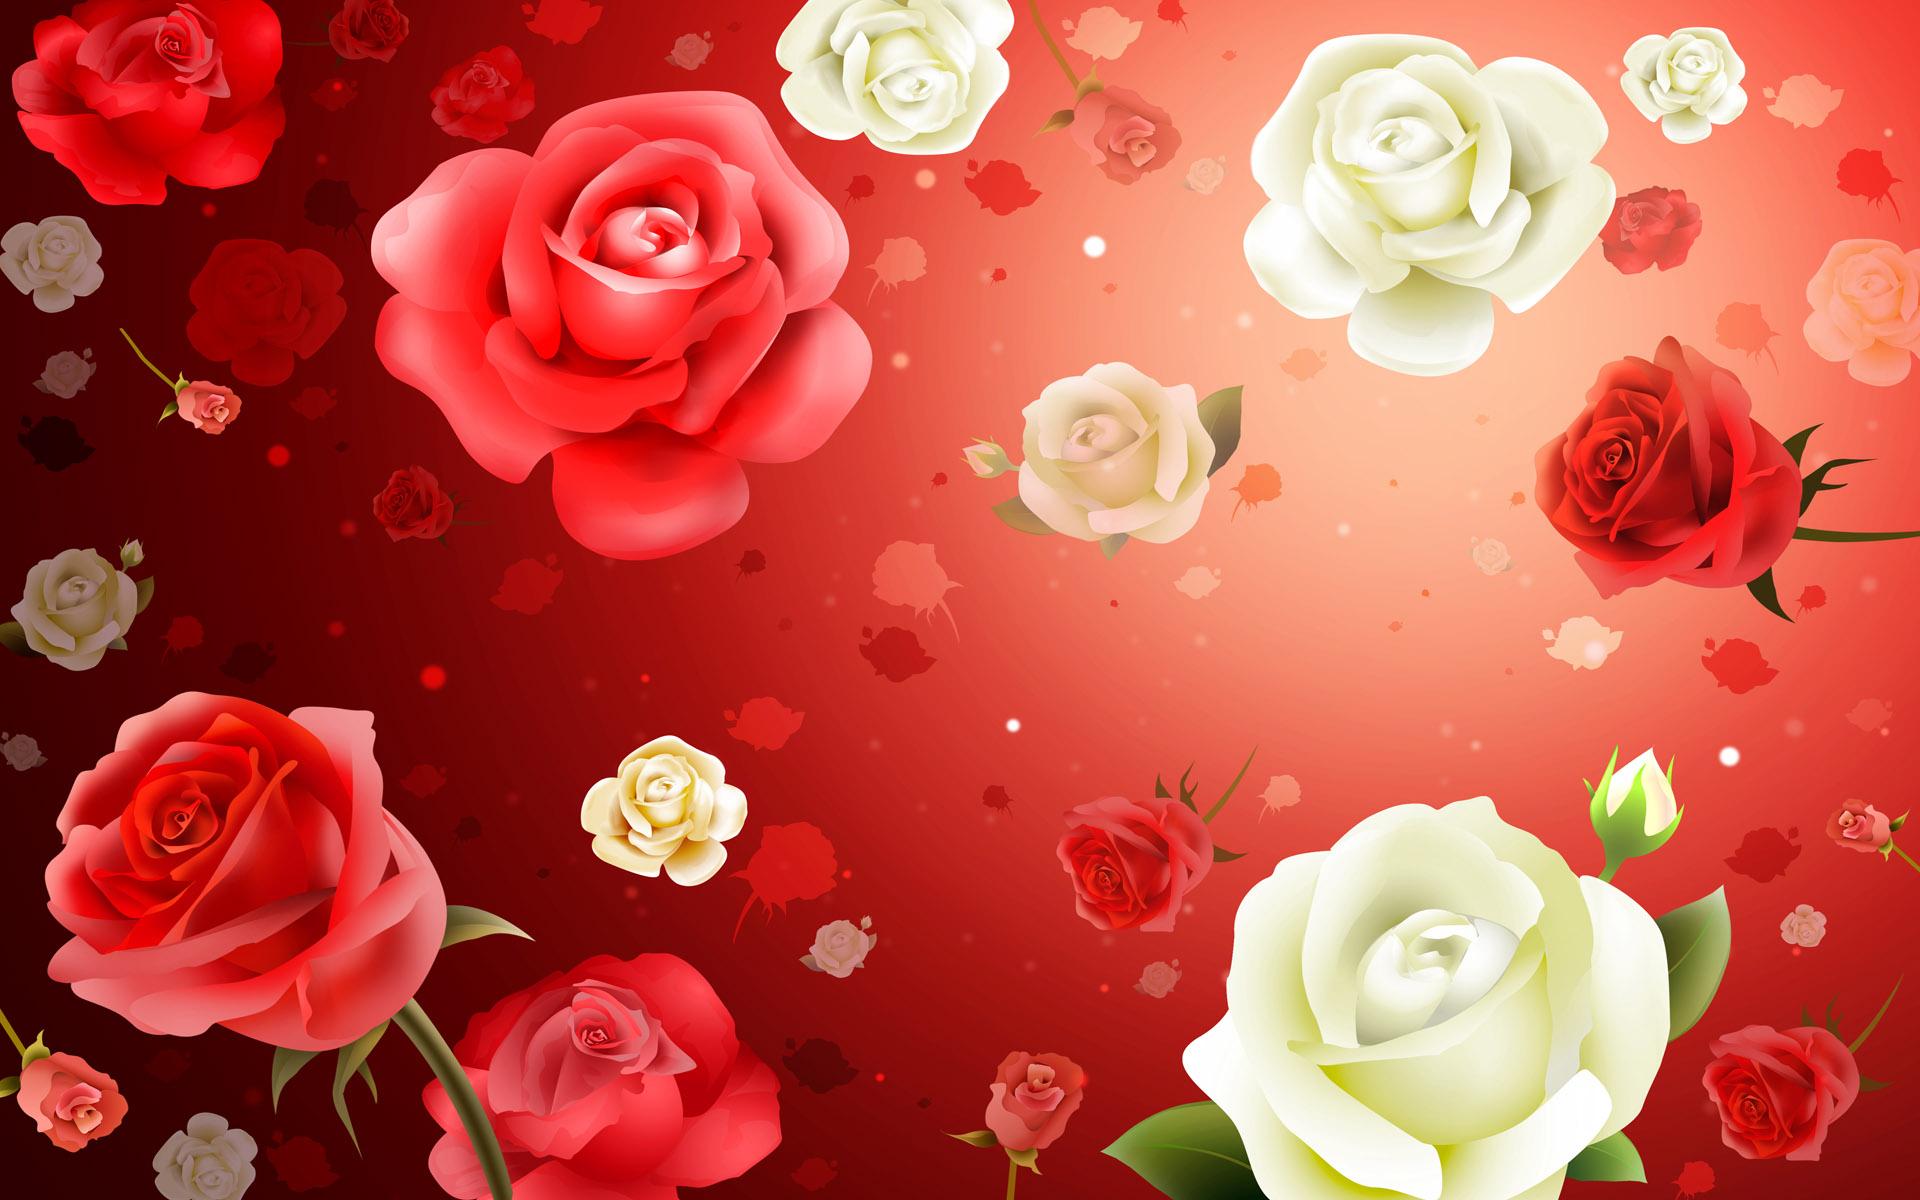 roses wallpapers wallpaper desktop 1920x1200 1920x1200